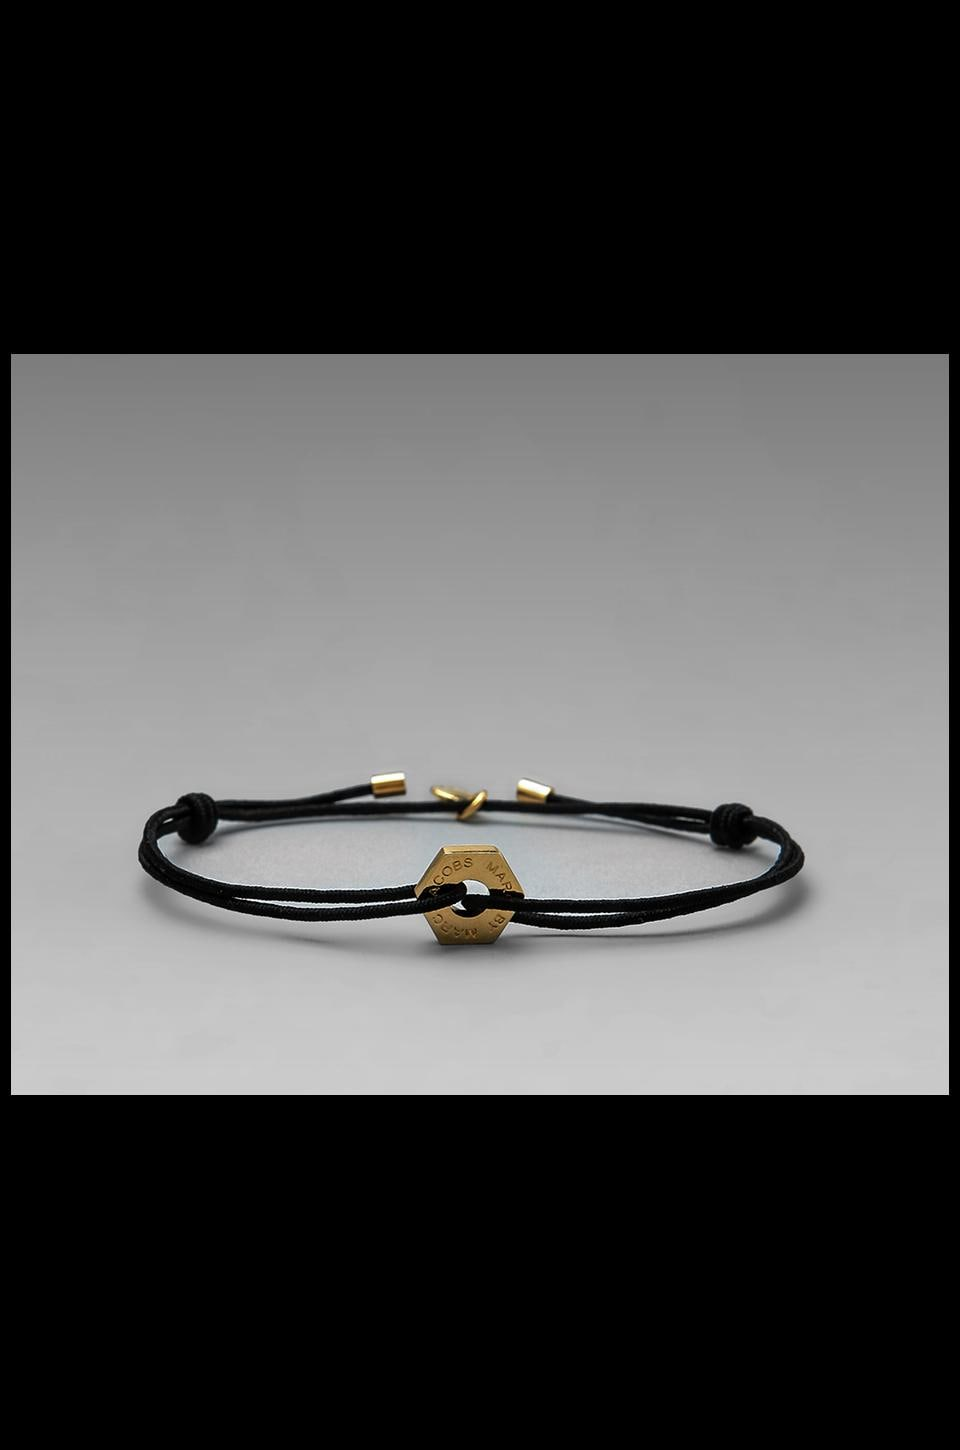 Marc by Marc Jacobs Bolt Friendship Bracelet in Black